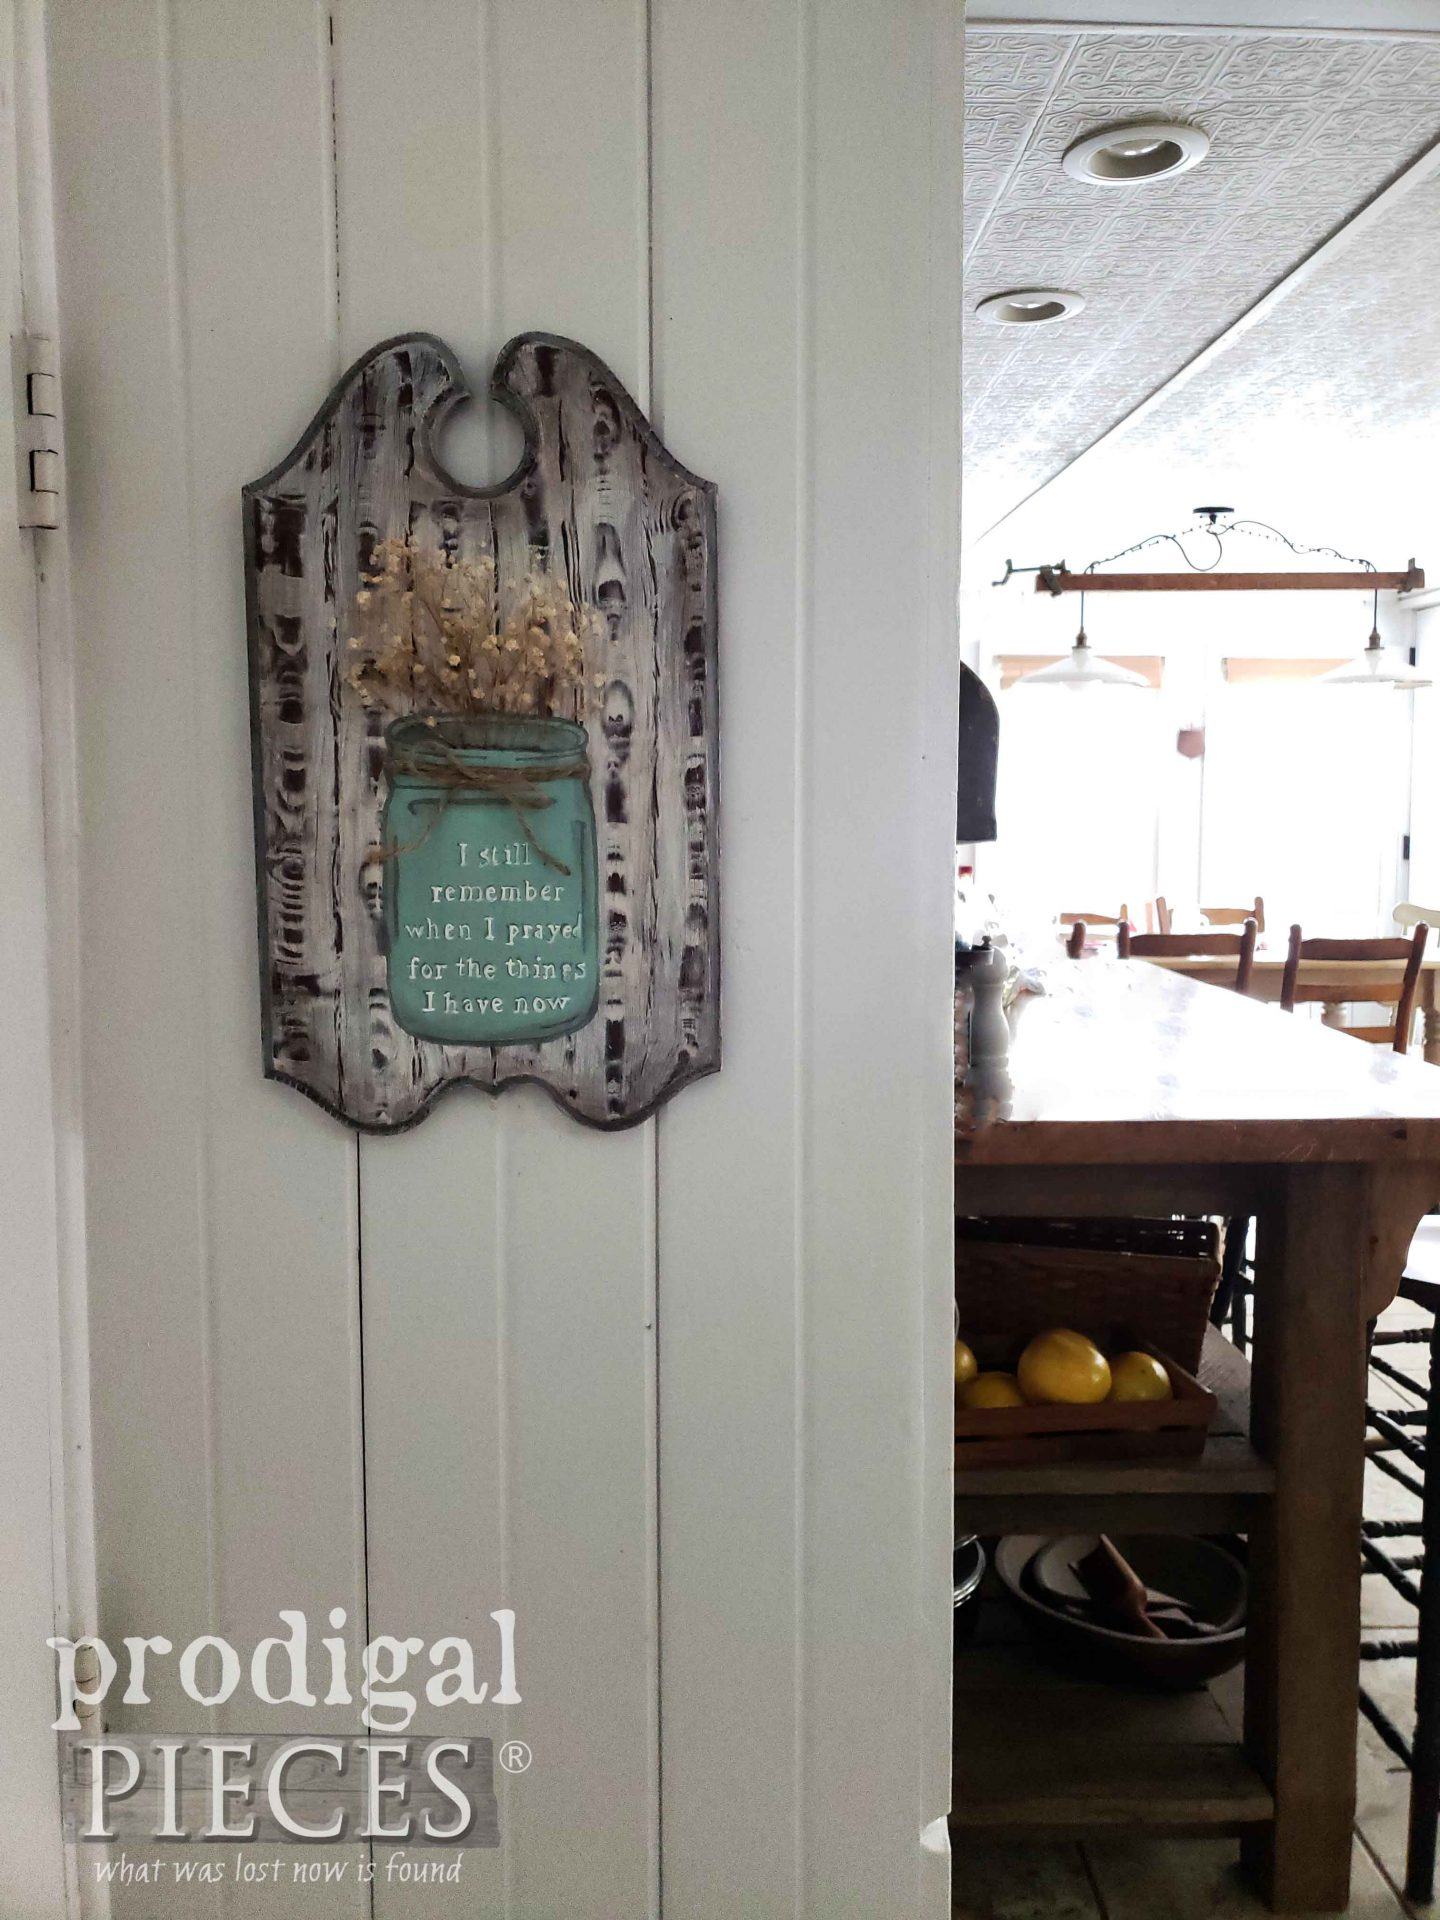 I Still Remember Praying for the Things I Have Now Wall Art by Larissa of Prodigal Pieces | prodigalpieces.com #prodigalpieces #diy #farmhouse #home #homedecor #art